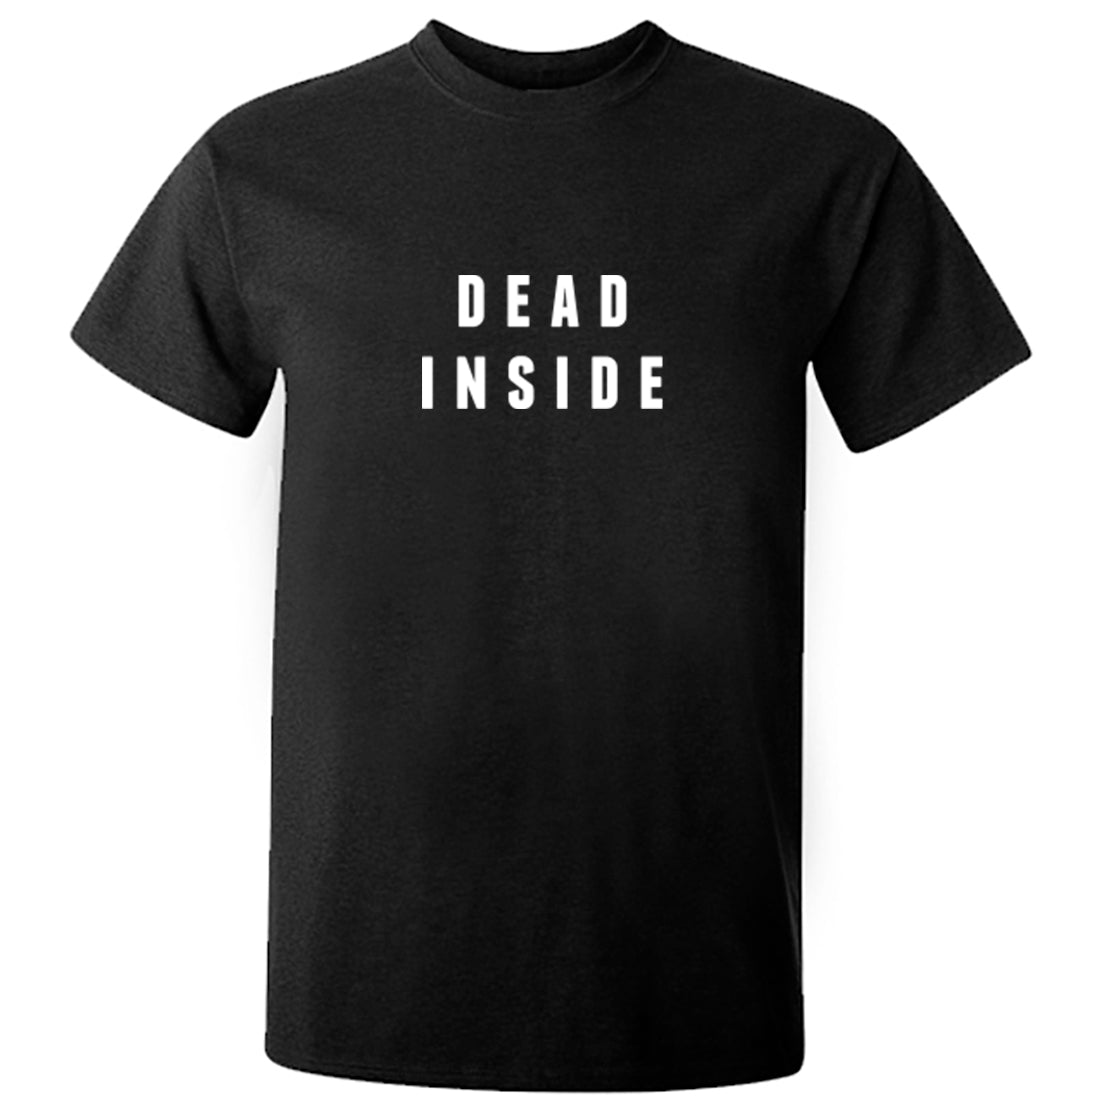 Dead Inside Unisex Fit T-Shirt K1964 - Illustrated Identity Ltd.